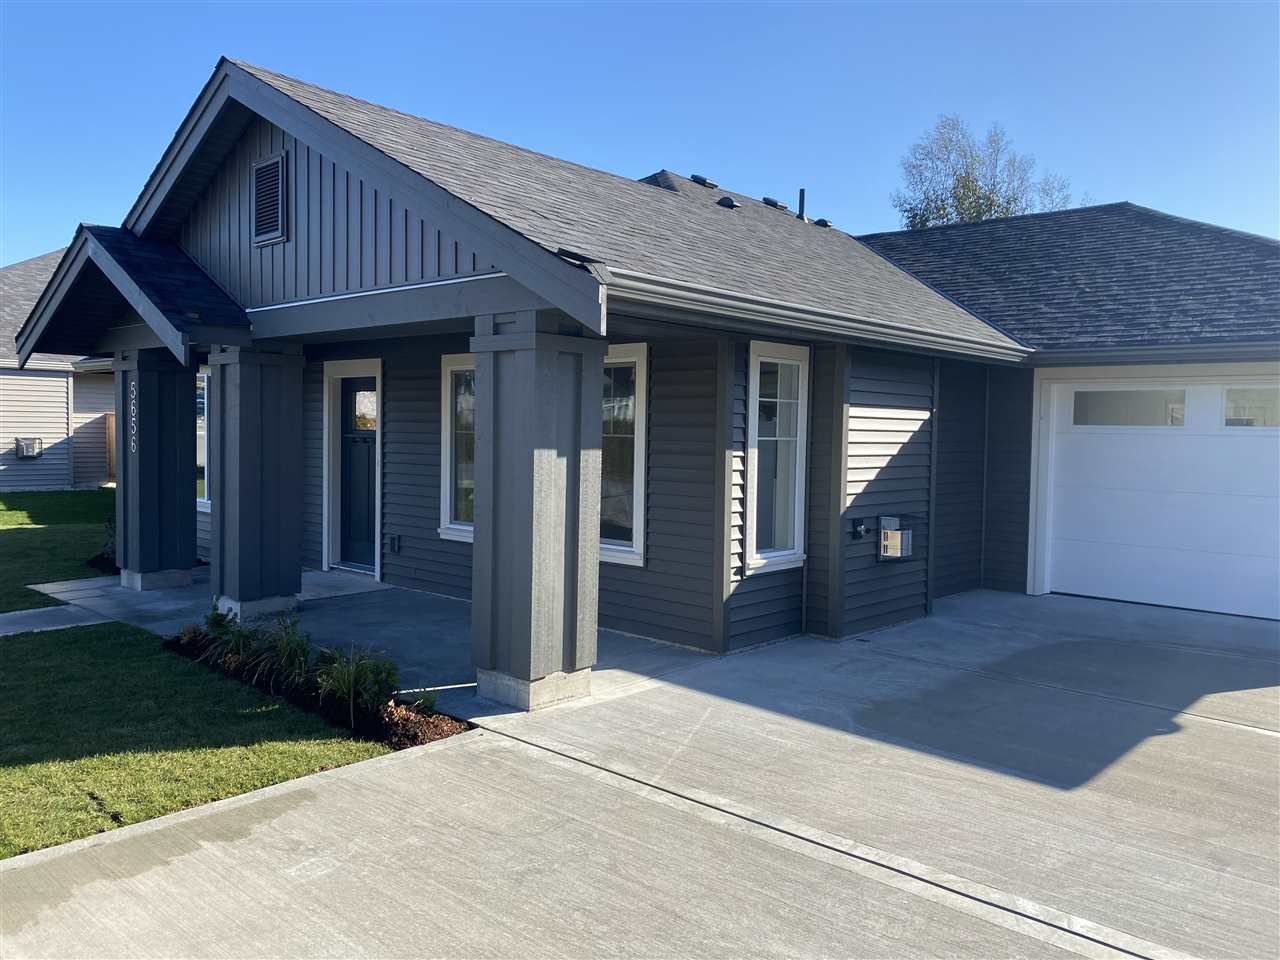 """Main Photo: 5656 PARTRIDGE Way in Sechelt: Sechelt District House for sale in """"TYLER HEIGHTS"""" (Sunshine Coast)  : MLS®# R2370014"""